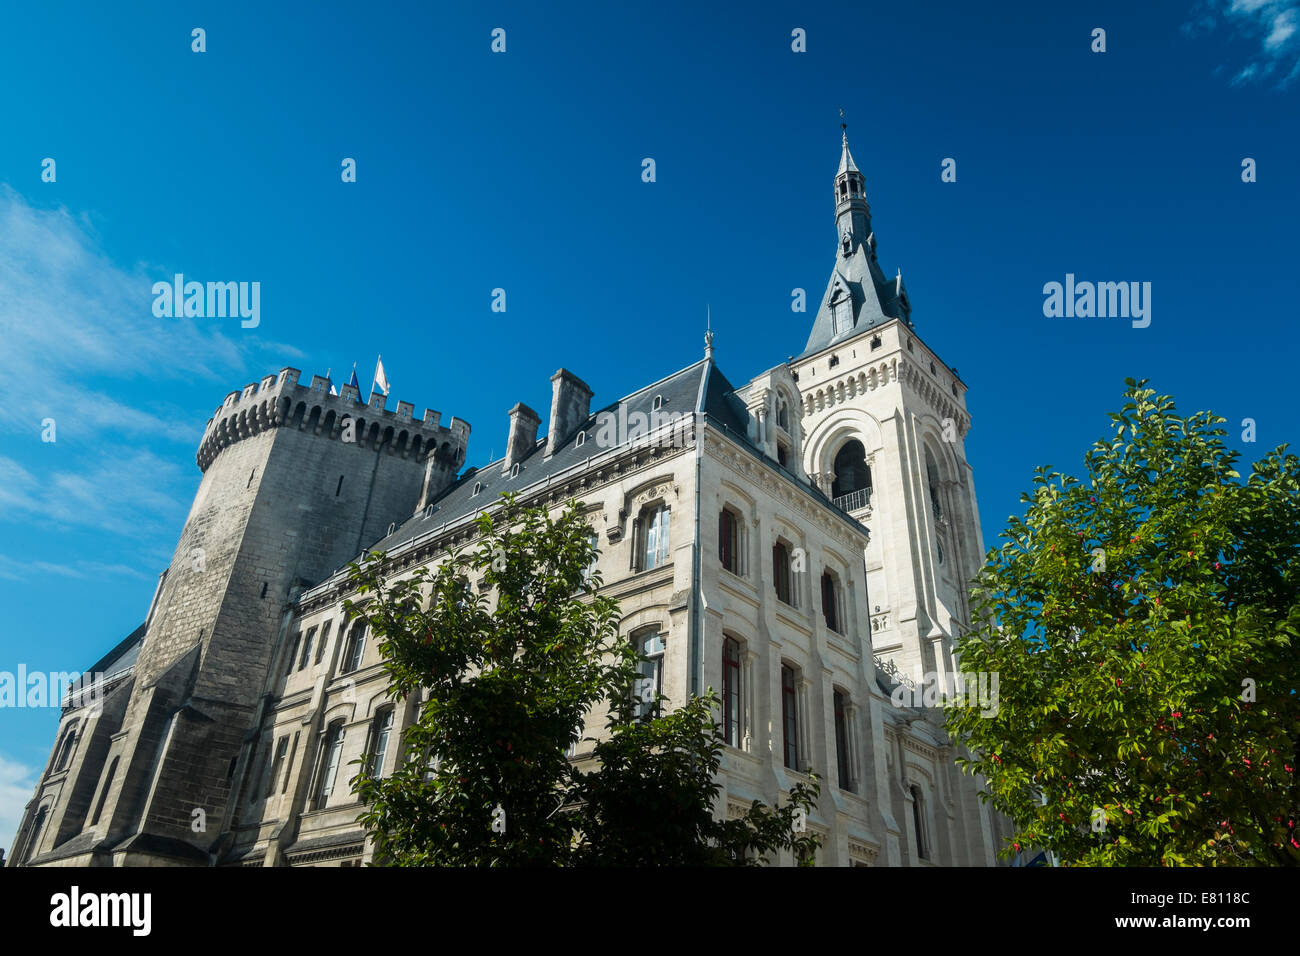 The Hotel De Ville At Angouleme, In The Charente Region Of France.   Stock